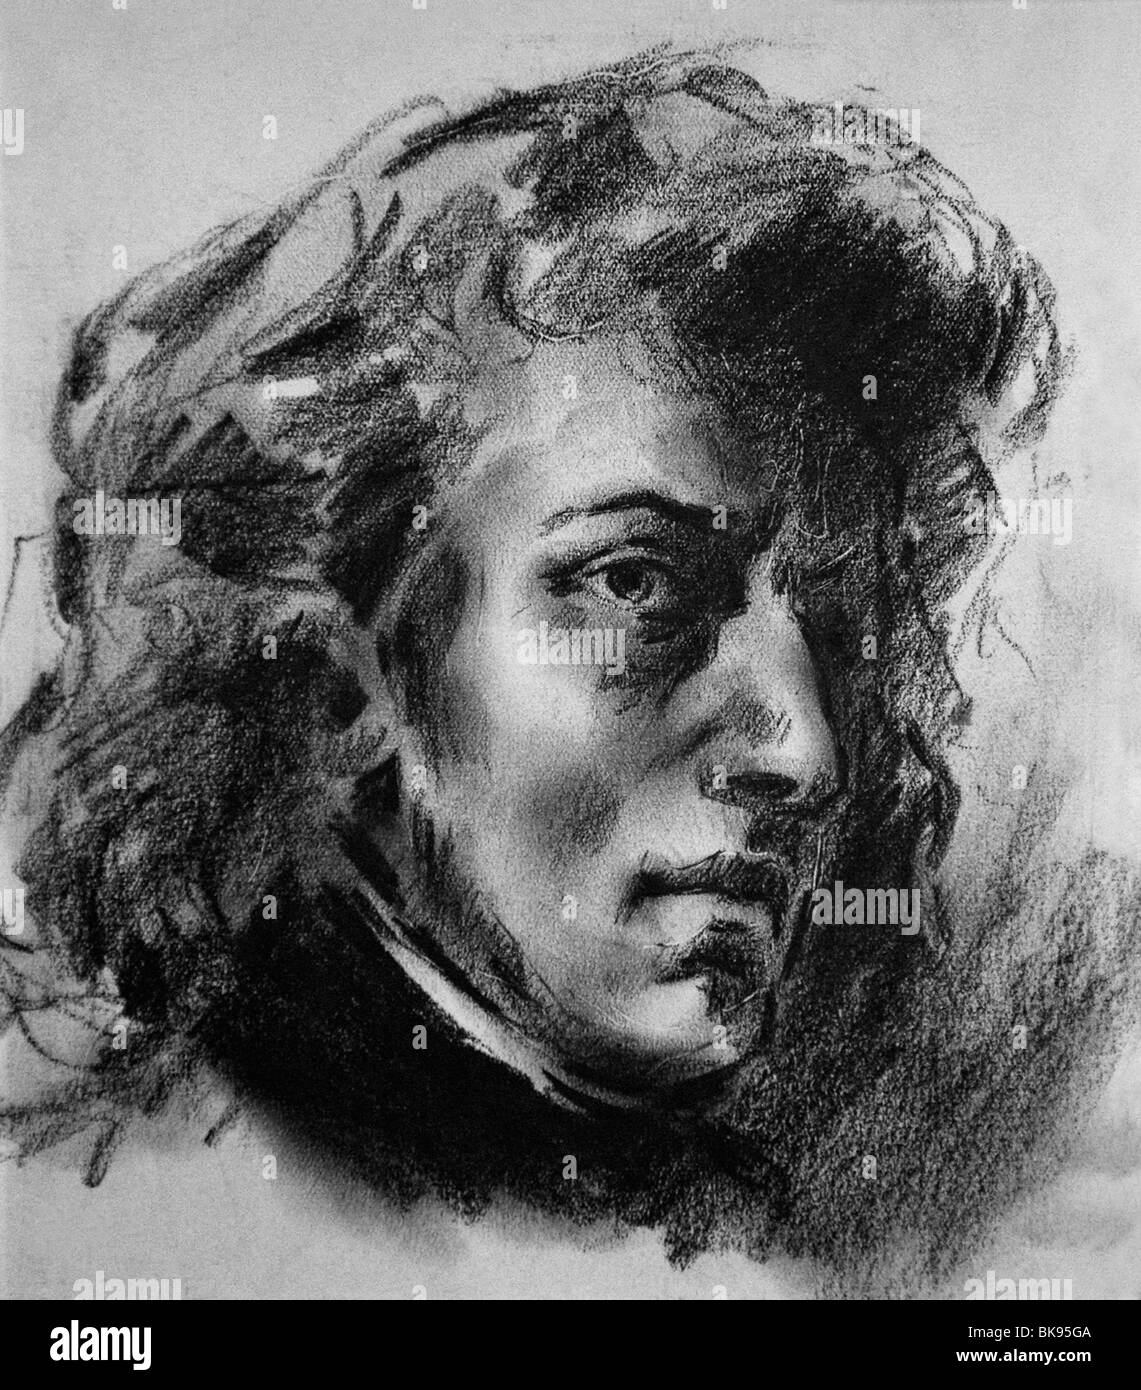 Portrait of Frederic Chopin by Eugene Delacroix, Royal Carthusian Monastery, Mallorca, Spain - Stock Image